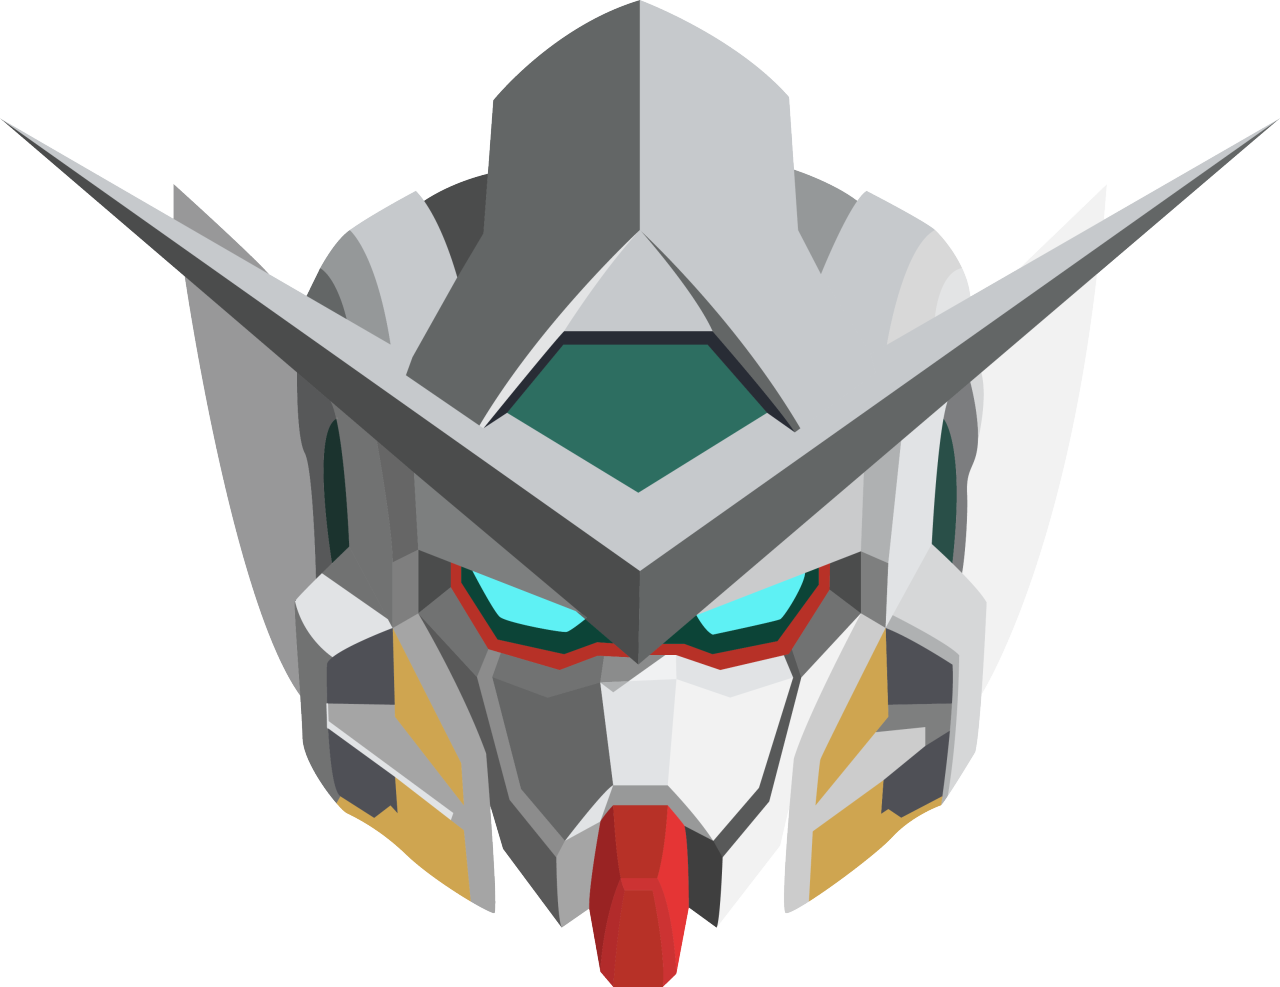 Gundam head png. Etiger exia from this